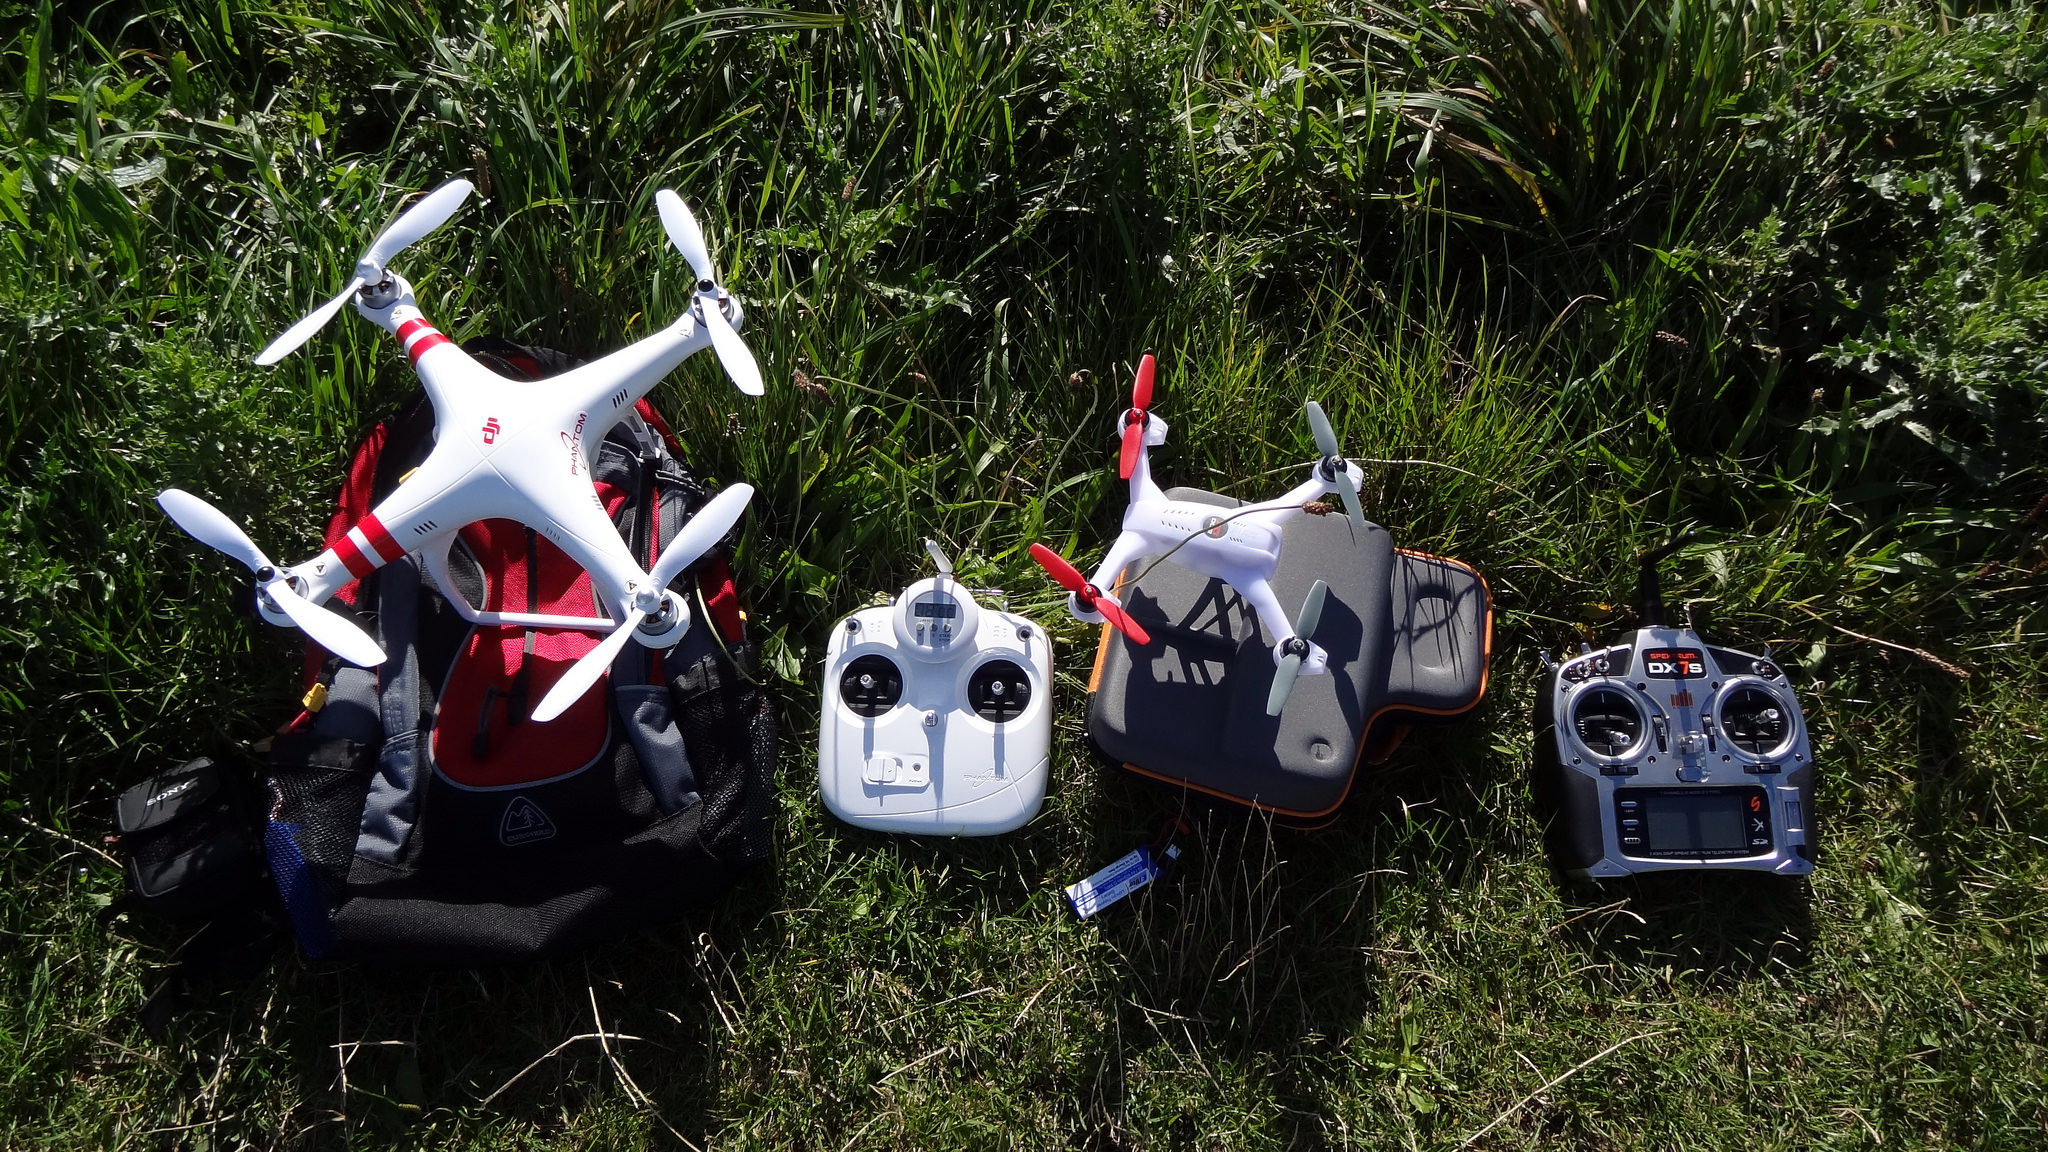 r44flyer, Quadcopters September 2, 2014